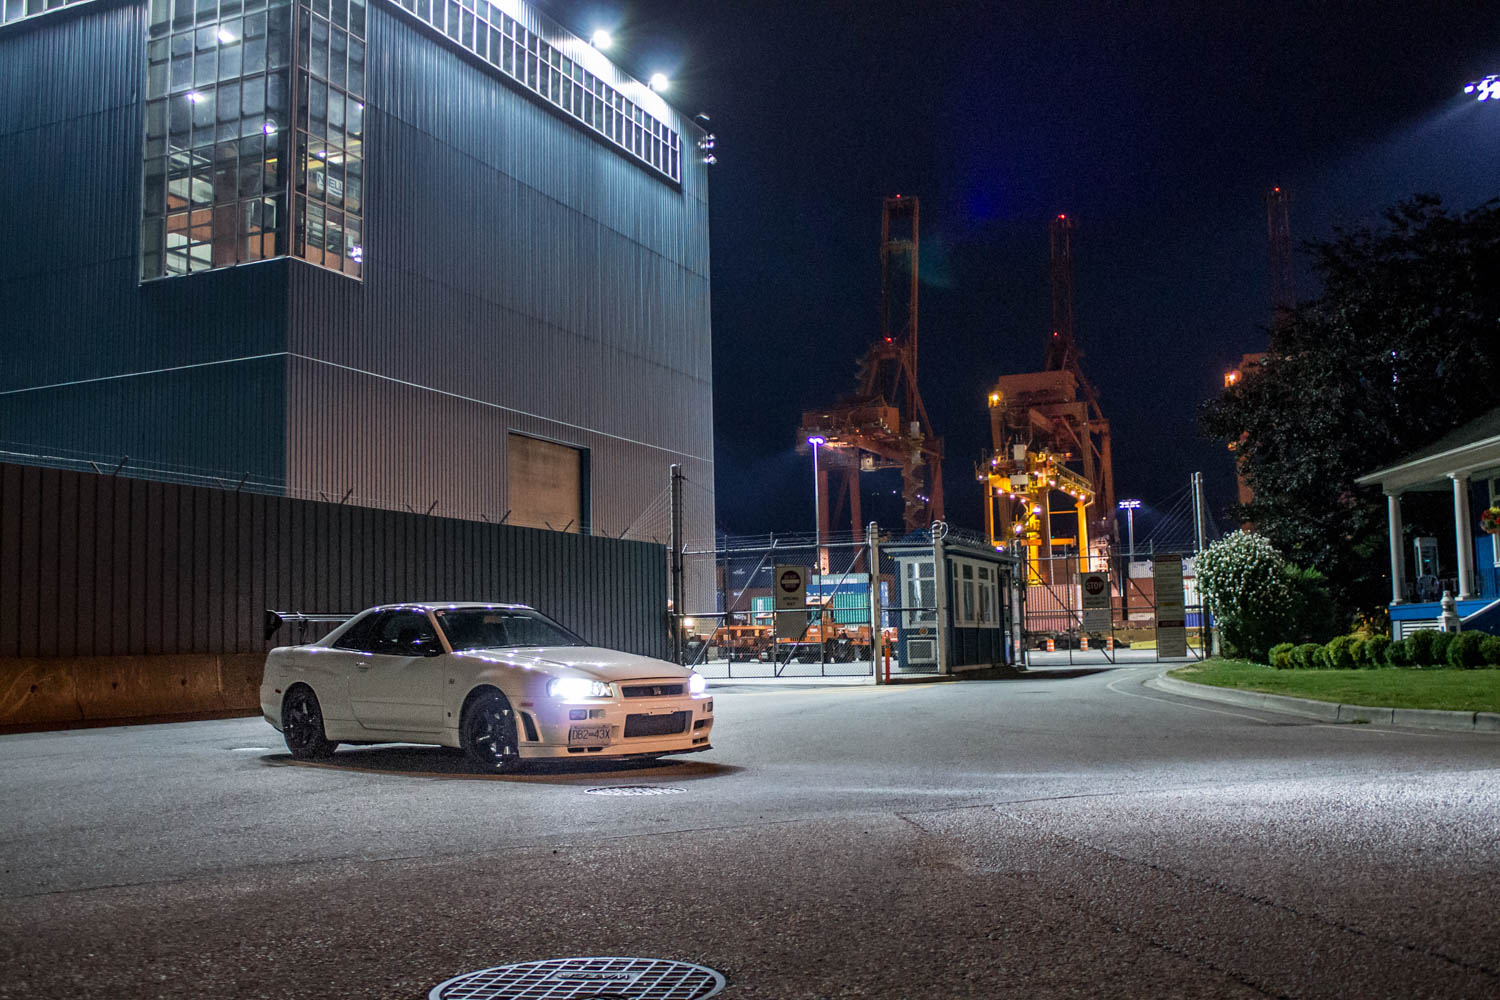 Nissan Skyline R34 GT-R at night